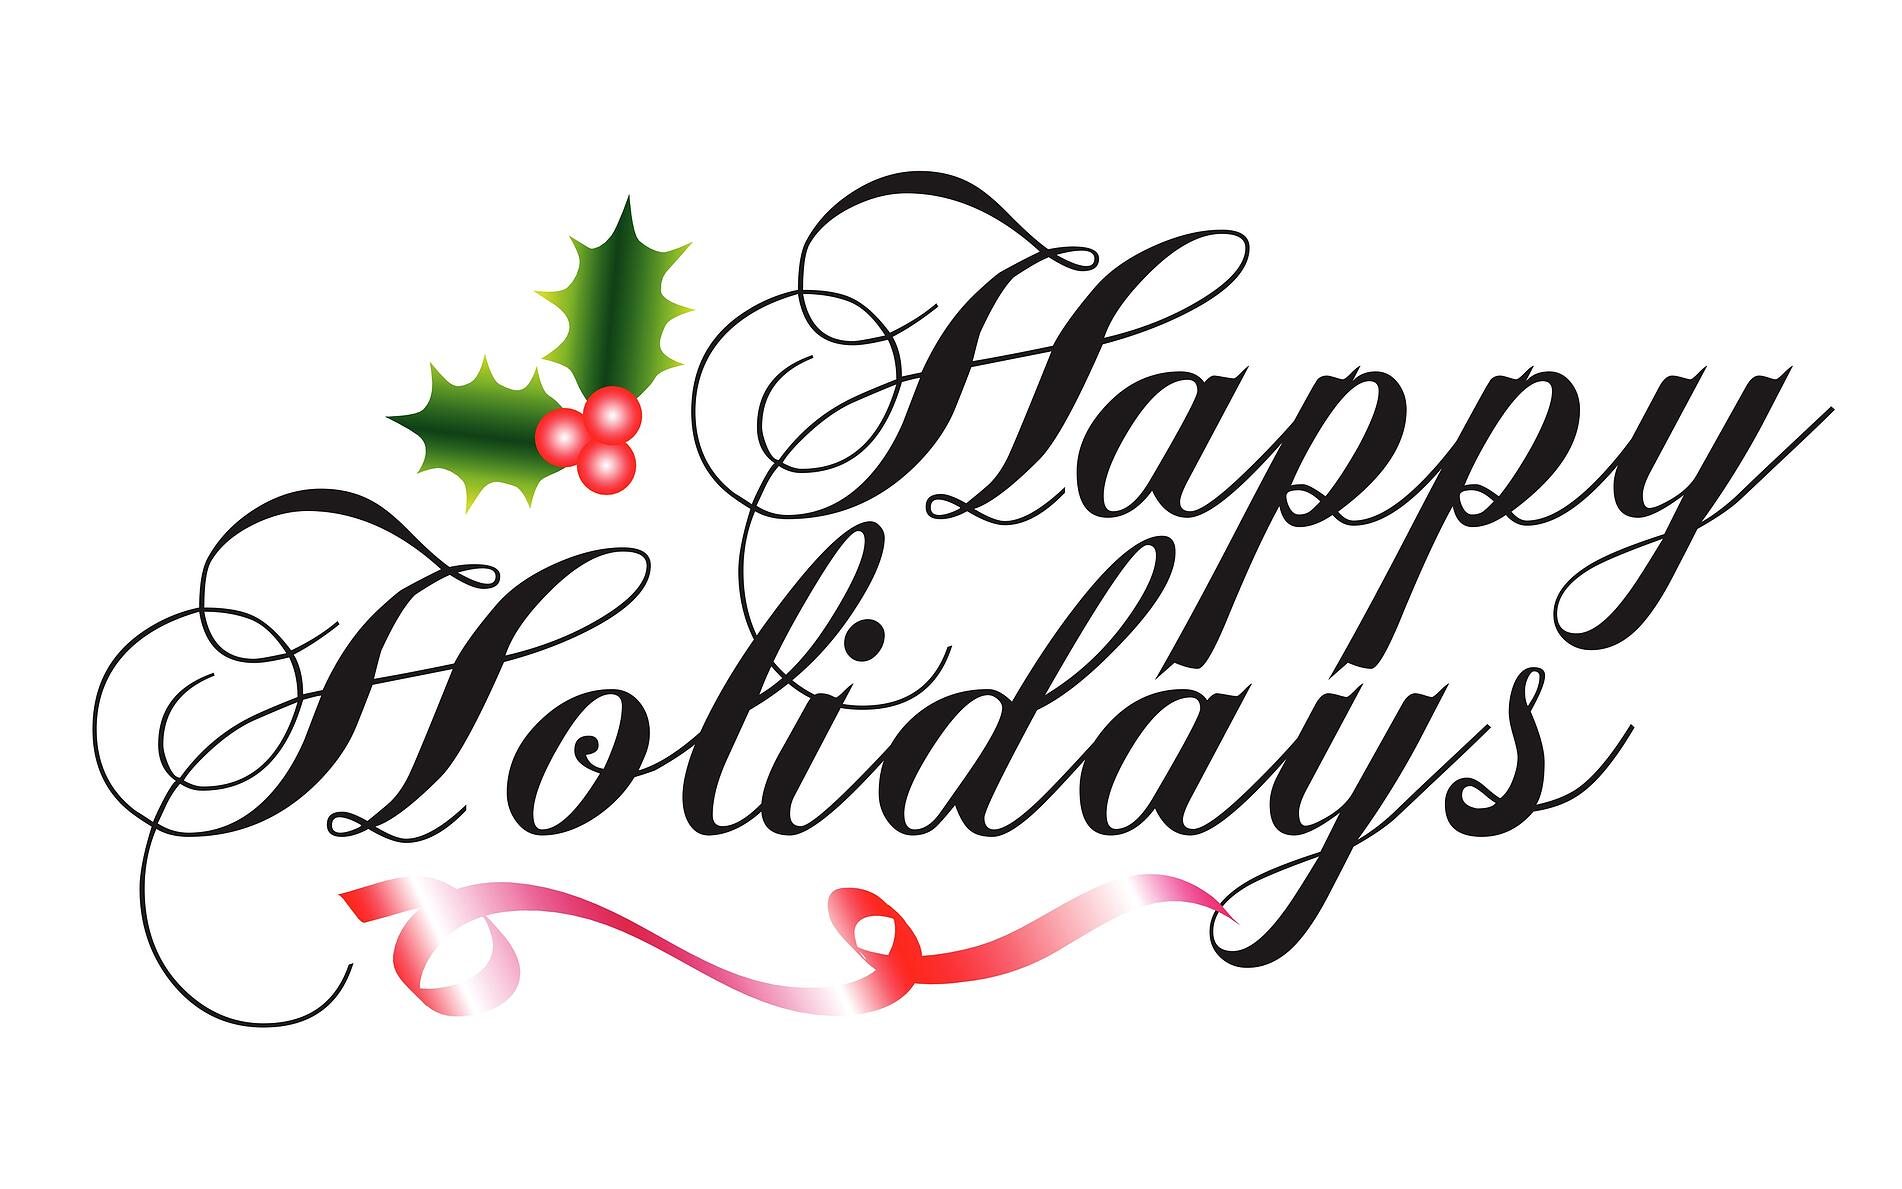 bigstock-Happy-Holidays-Type-6316938.jpg